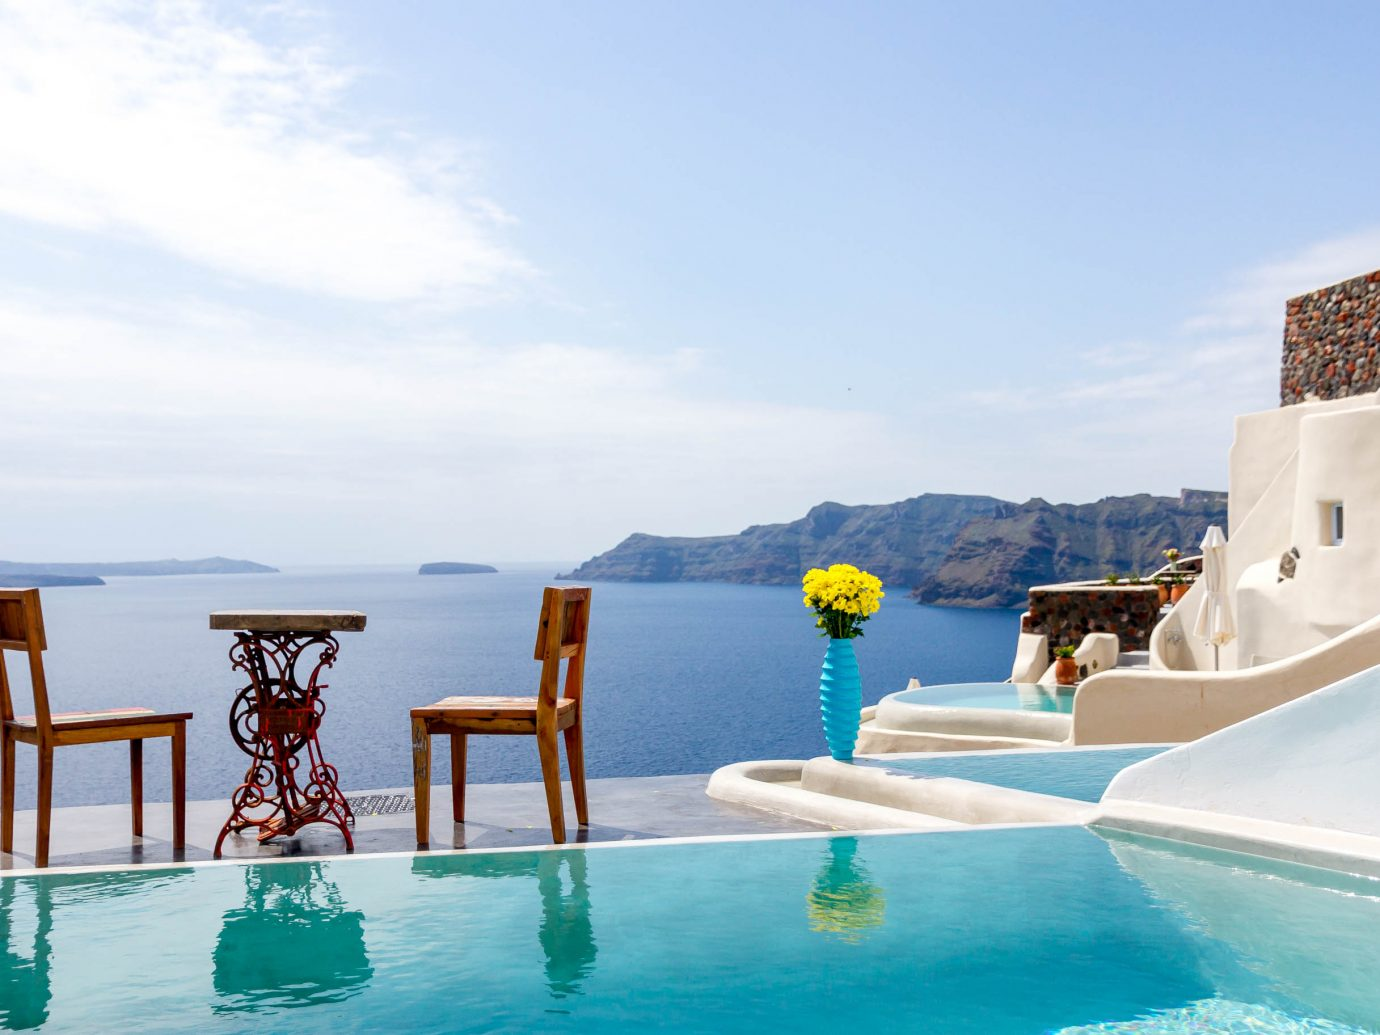 Infinity pool at Andronis Boutique Hotel, Santorini, Greece